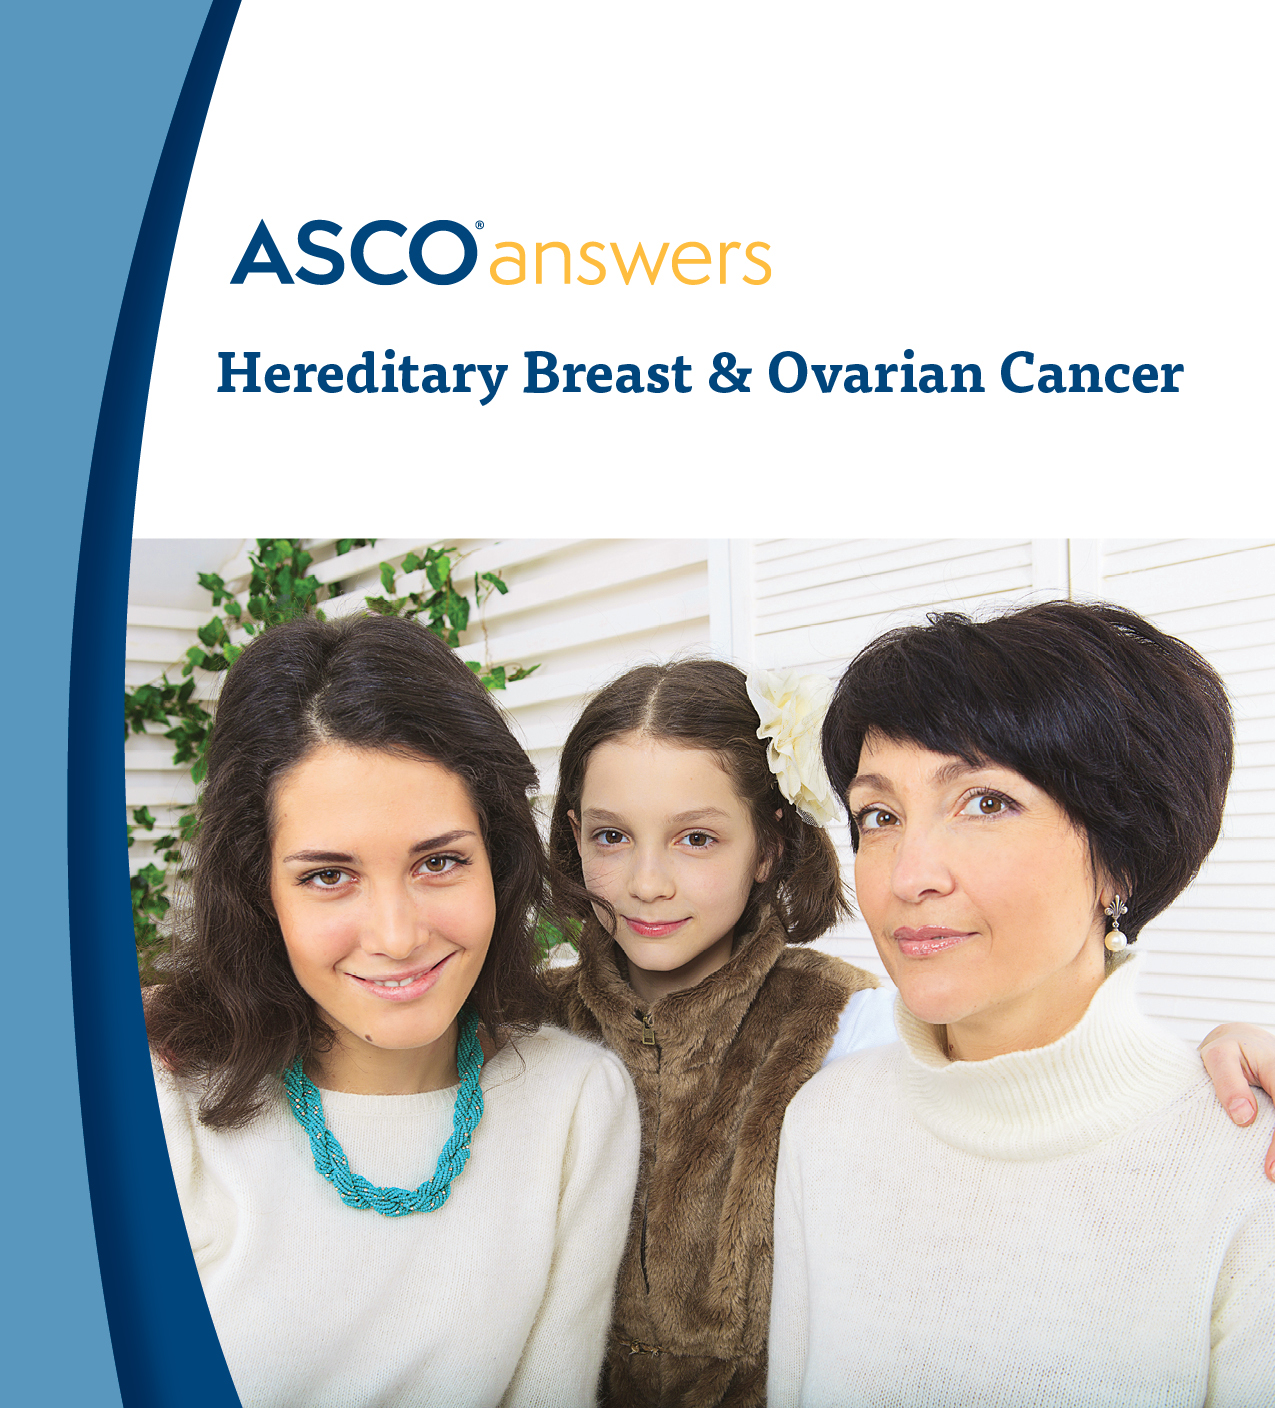 Hereditary Breast and Ovarian Cancer Fact Sheet (pack of 50 fact sheets)